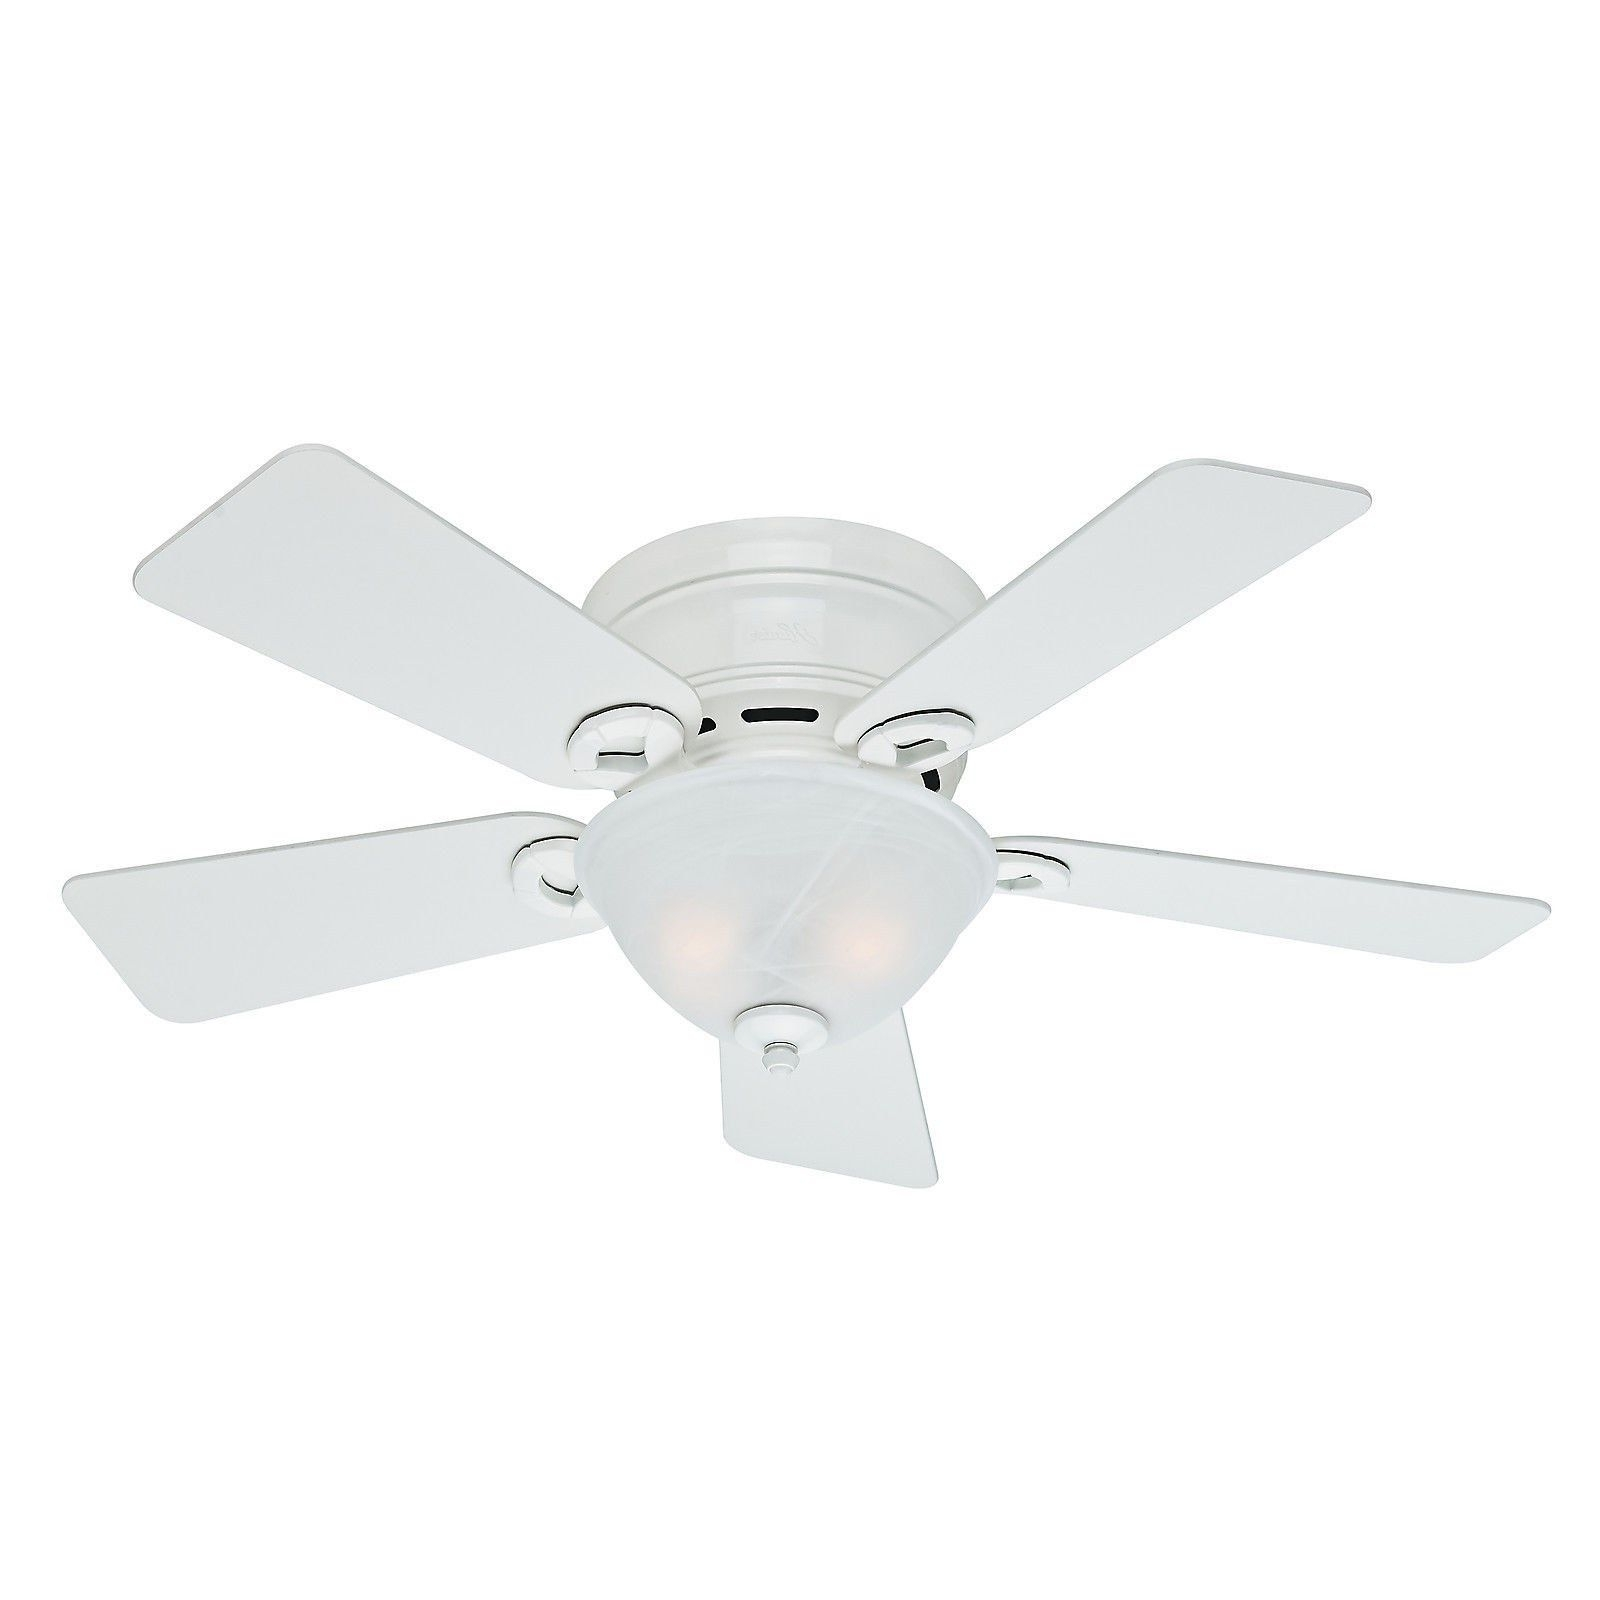 48 Inch Outdoor Ceiling Fans With Light Within Well Known Low Profile Outdoor Ceiling Fans Low Profile Outdoor Ceiling Light (View 8 of 20)